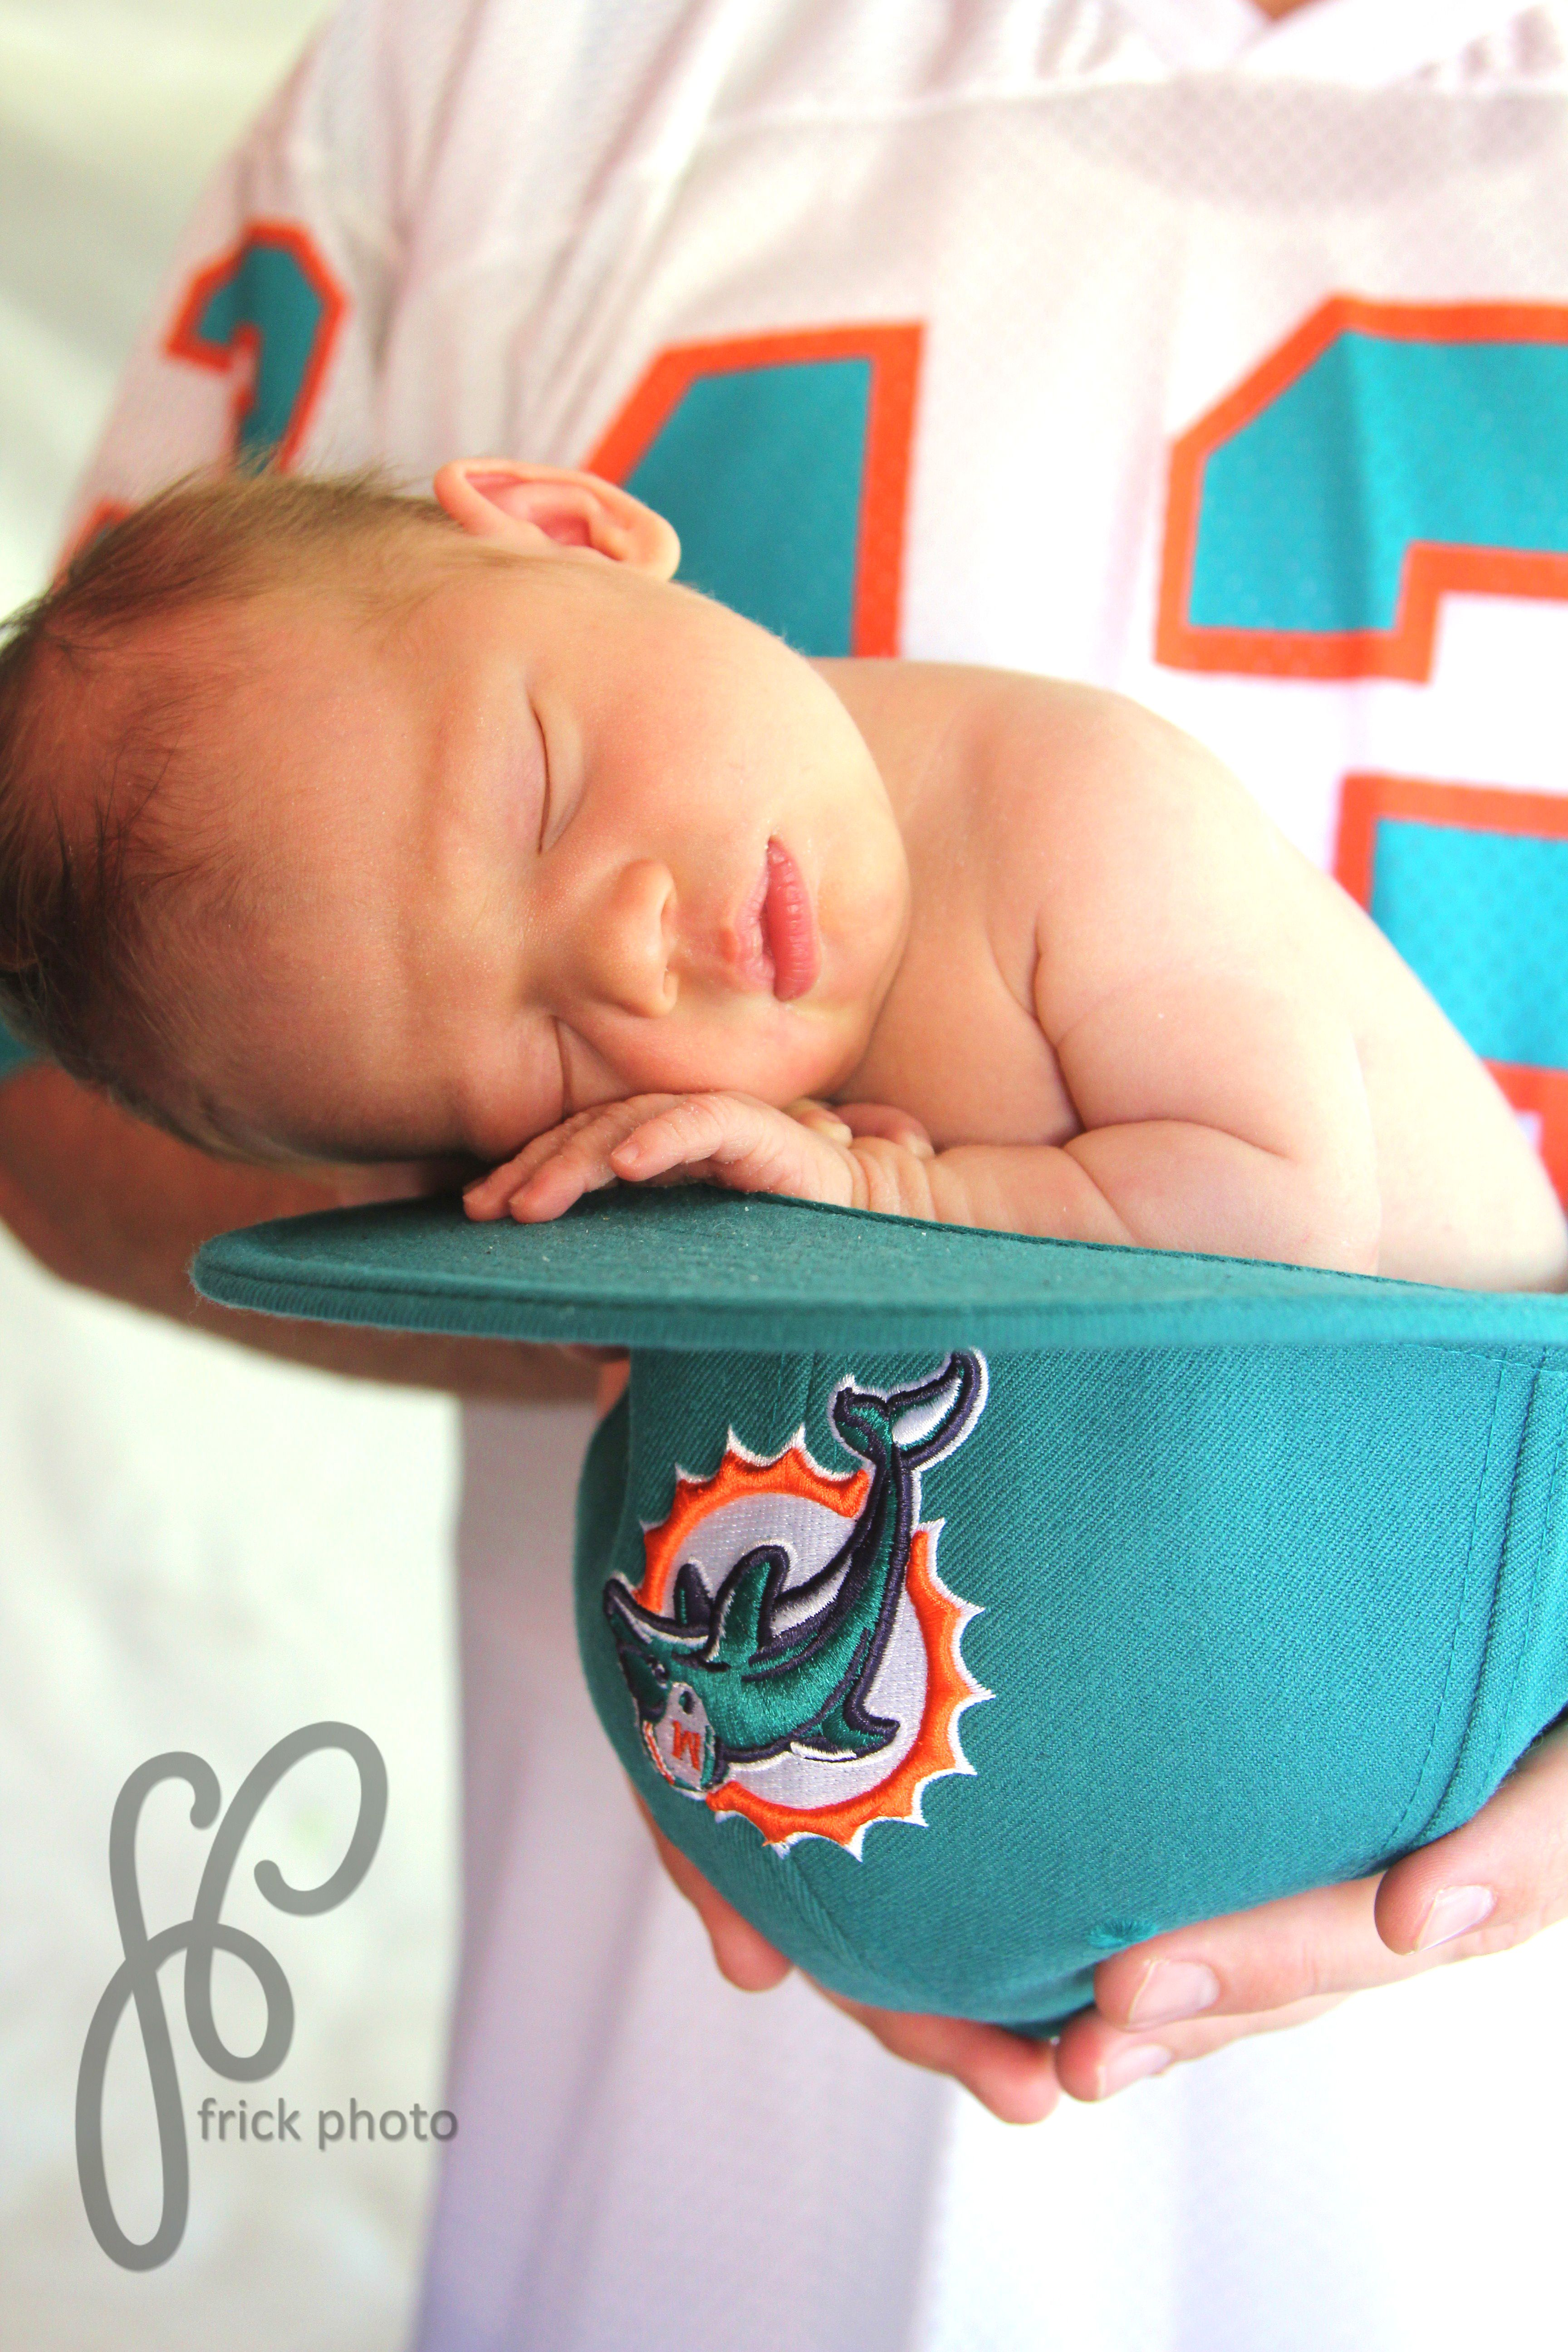 online retailer 2dd01 976f2 Miami Dolphins fan... Only with Baltimore Ravens or ...